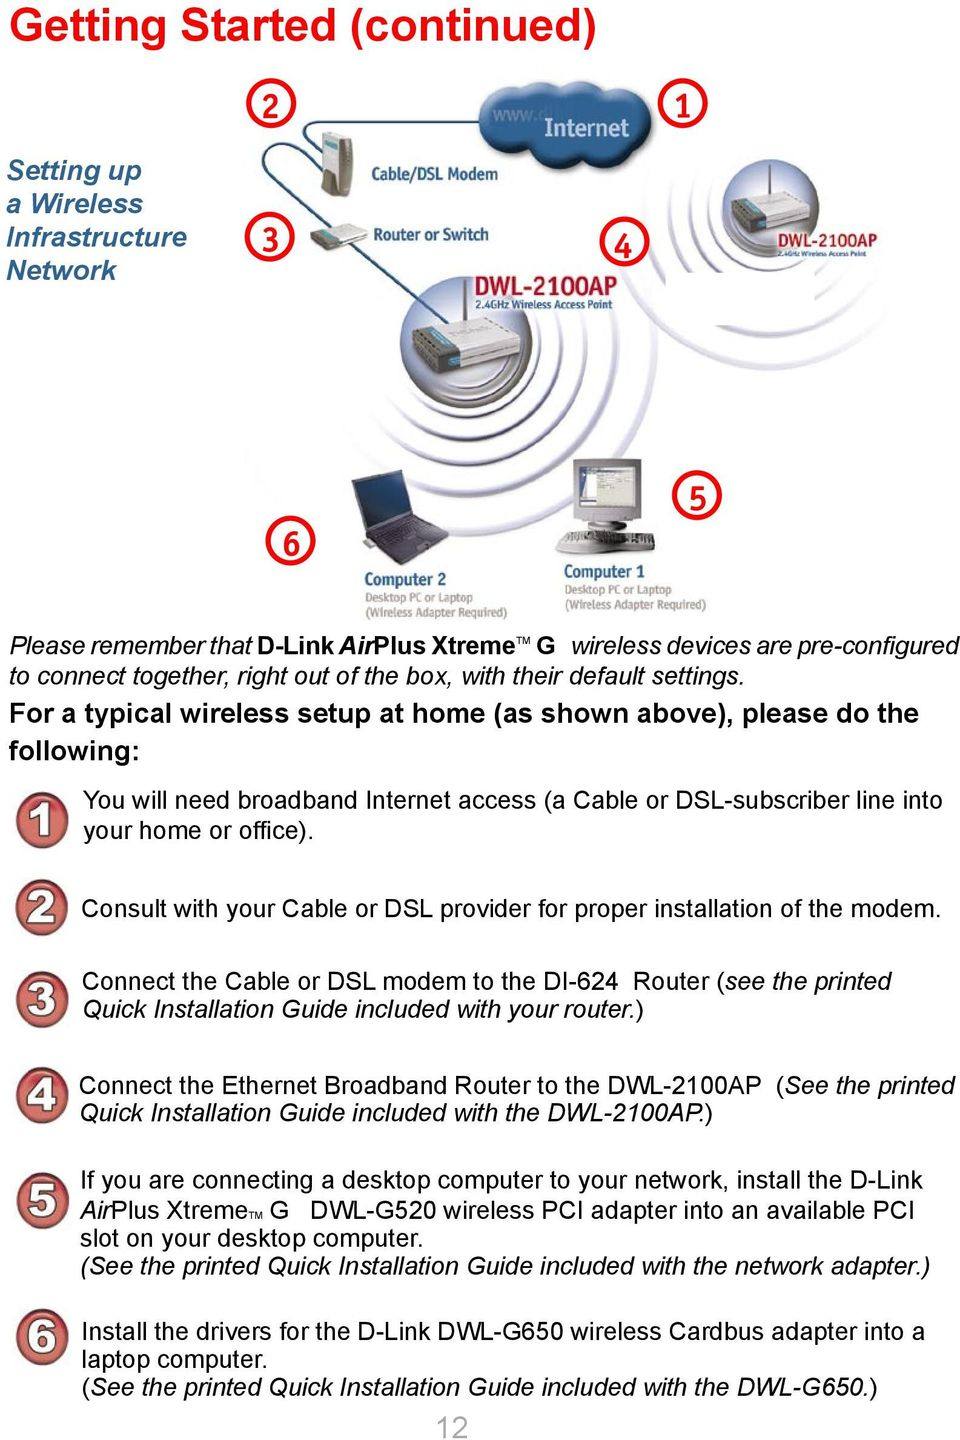 For a typical wireless setup at home (as shown above), please do the following: You will need broadband Internet access (a Cable or DSL-subscriber line into your home or office).